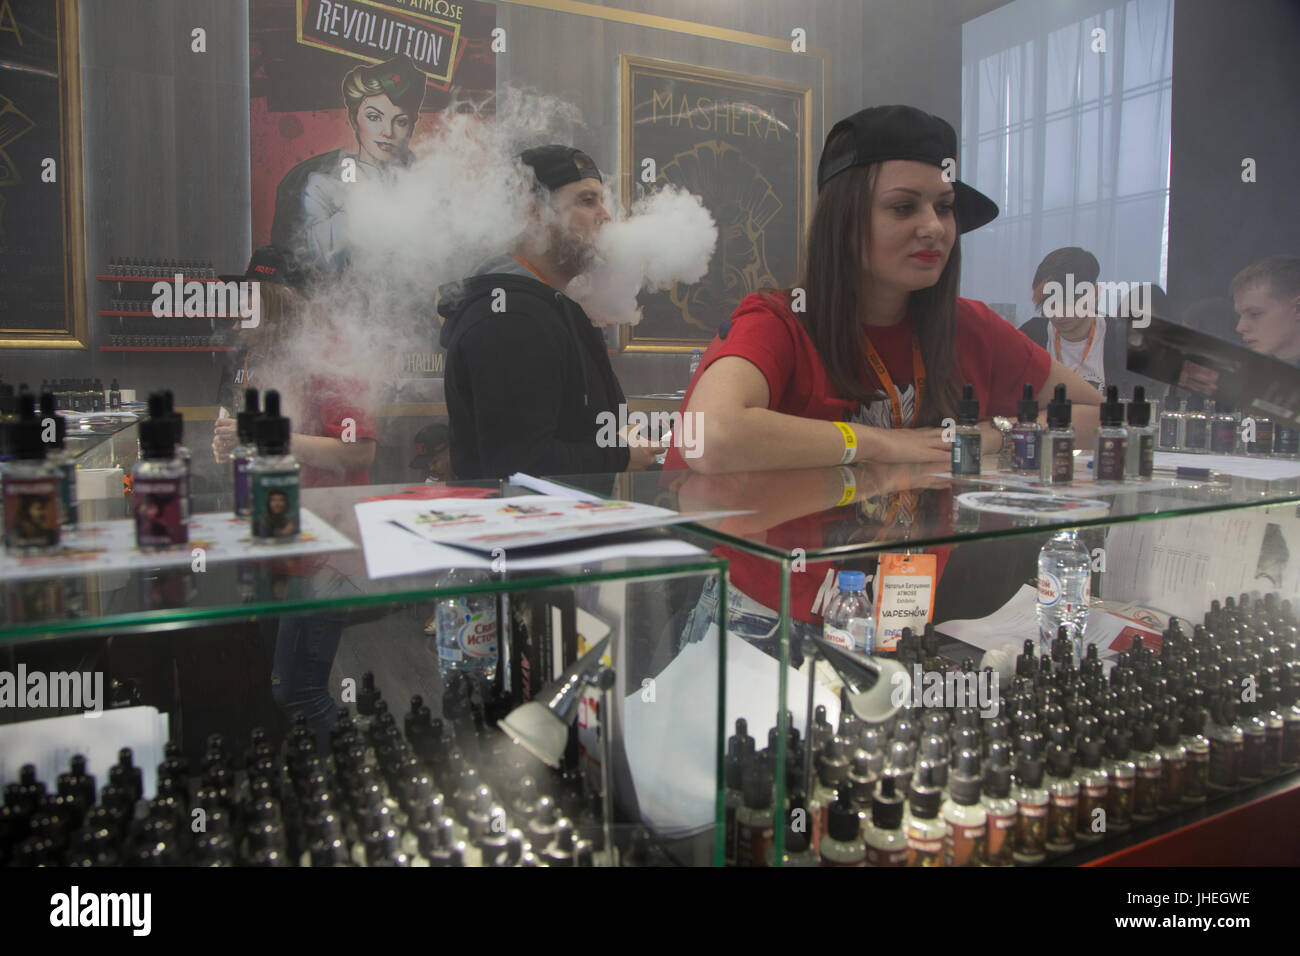 People smoke electronic cigarettes at the vape shop in Moscow, Russia - Stock Image